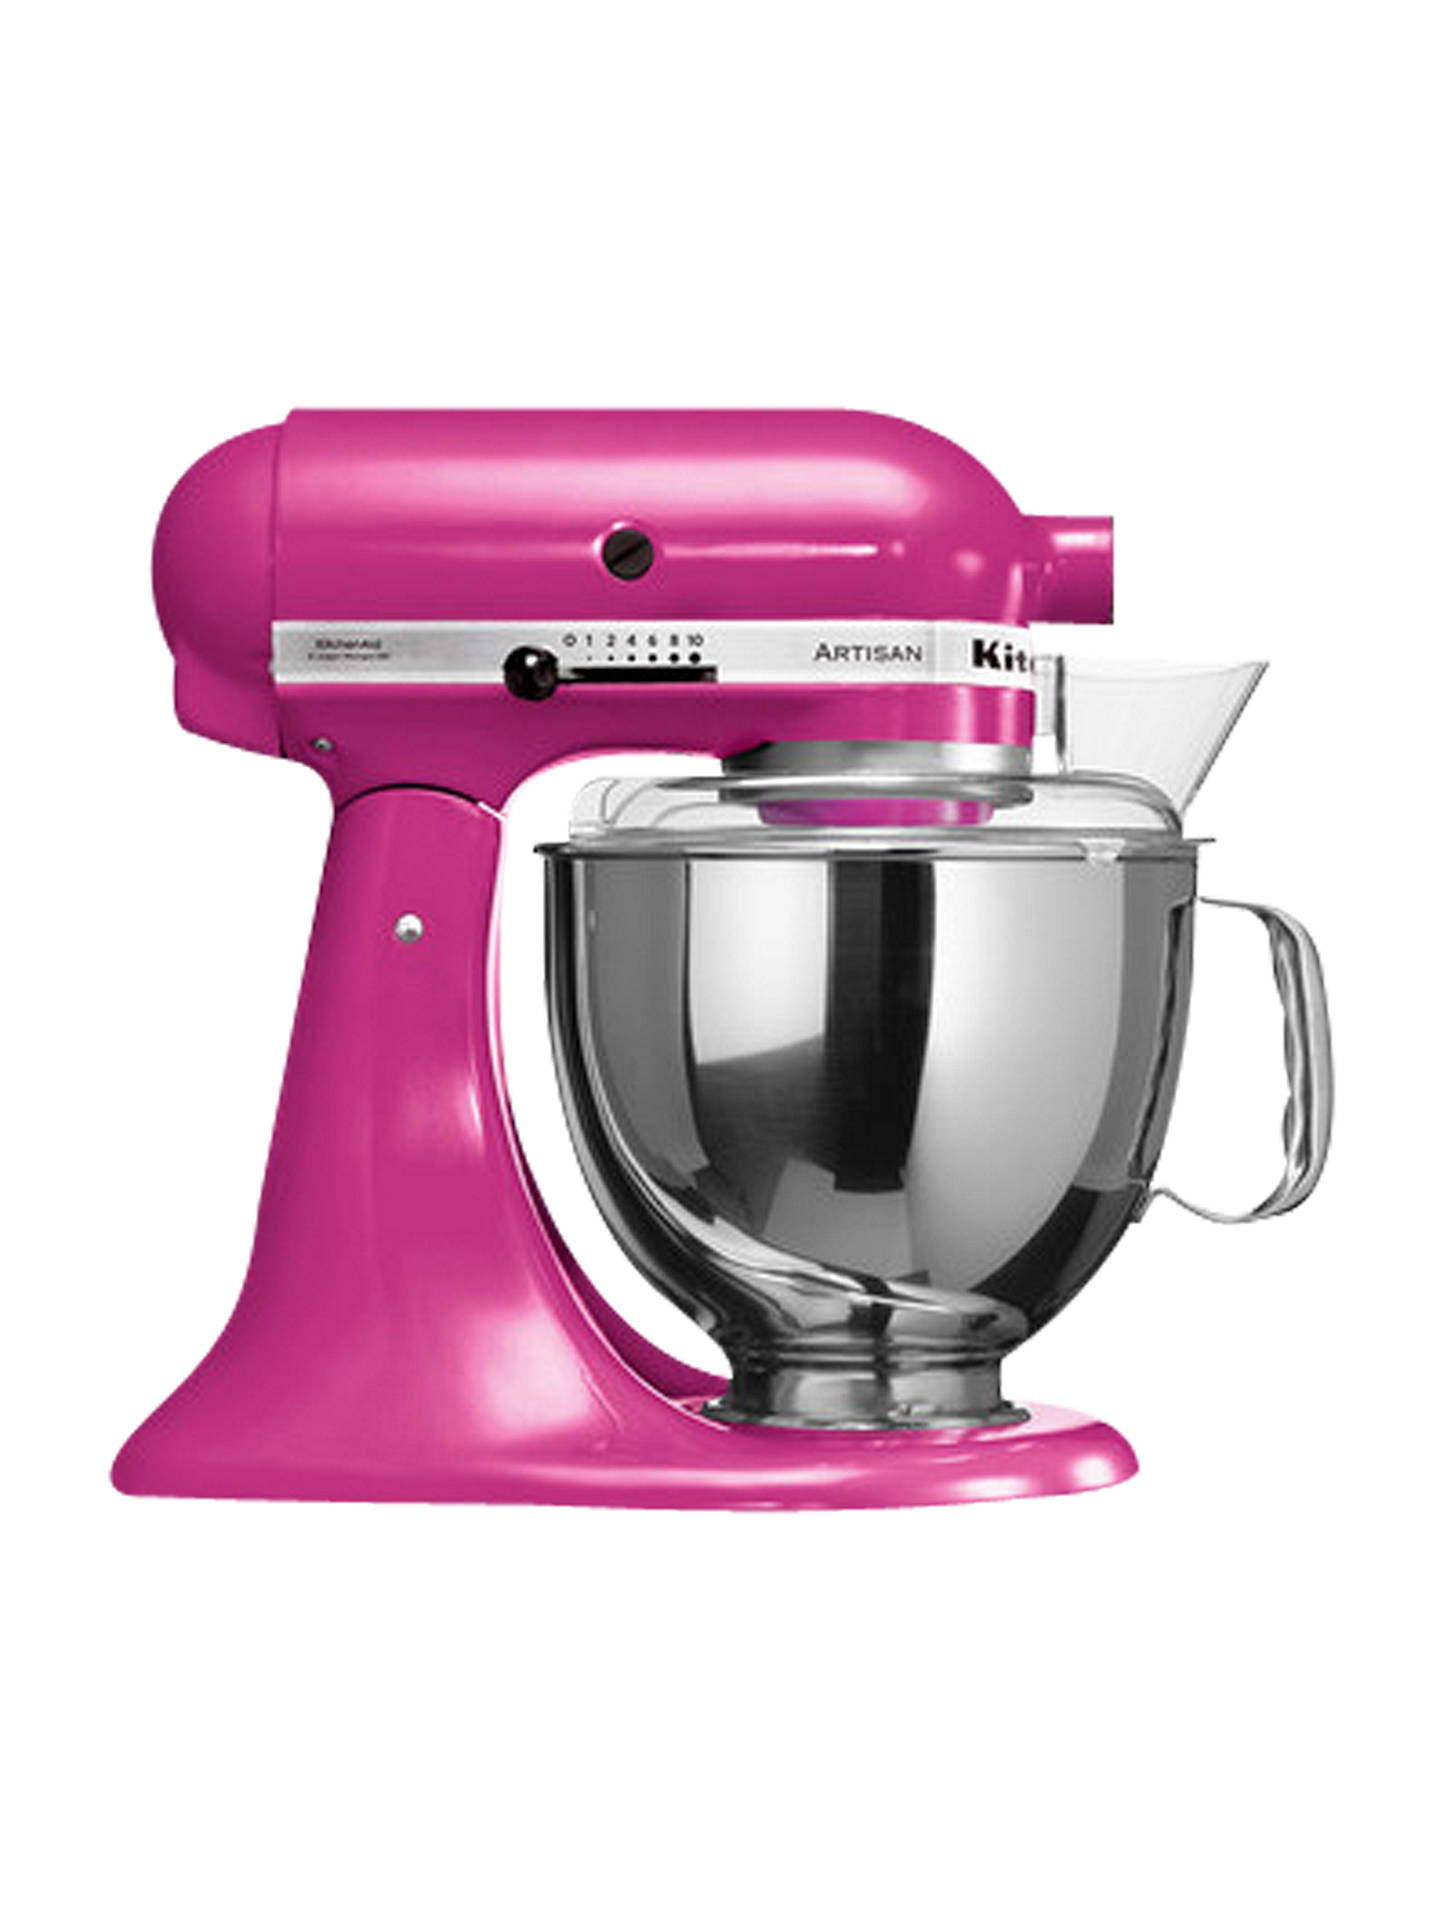 Buy KitchenAid Artisan 4.8L Stand Mixer, Cranberry Online at johnlewis.com